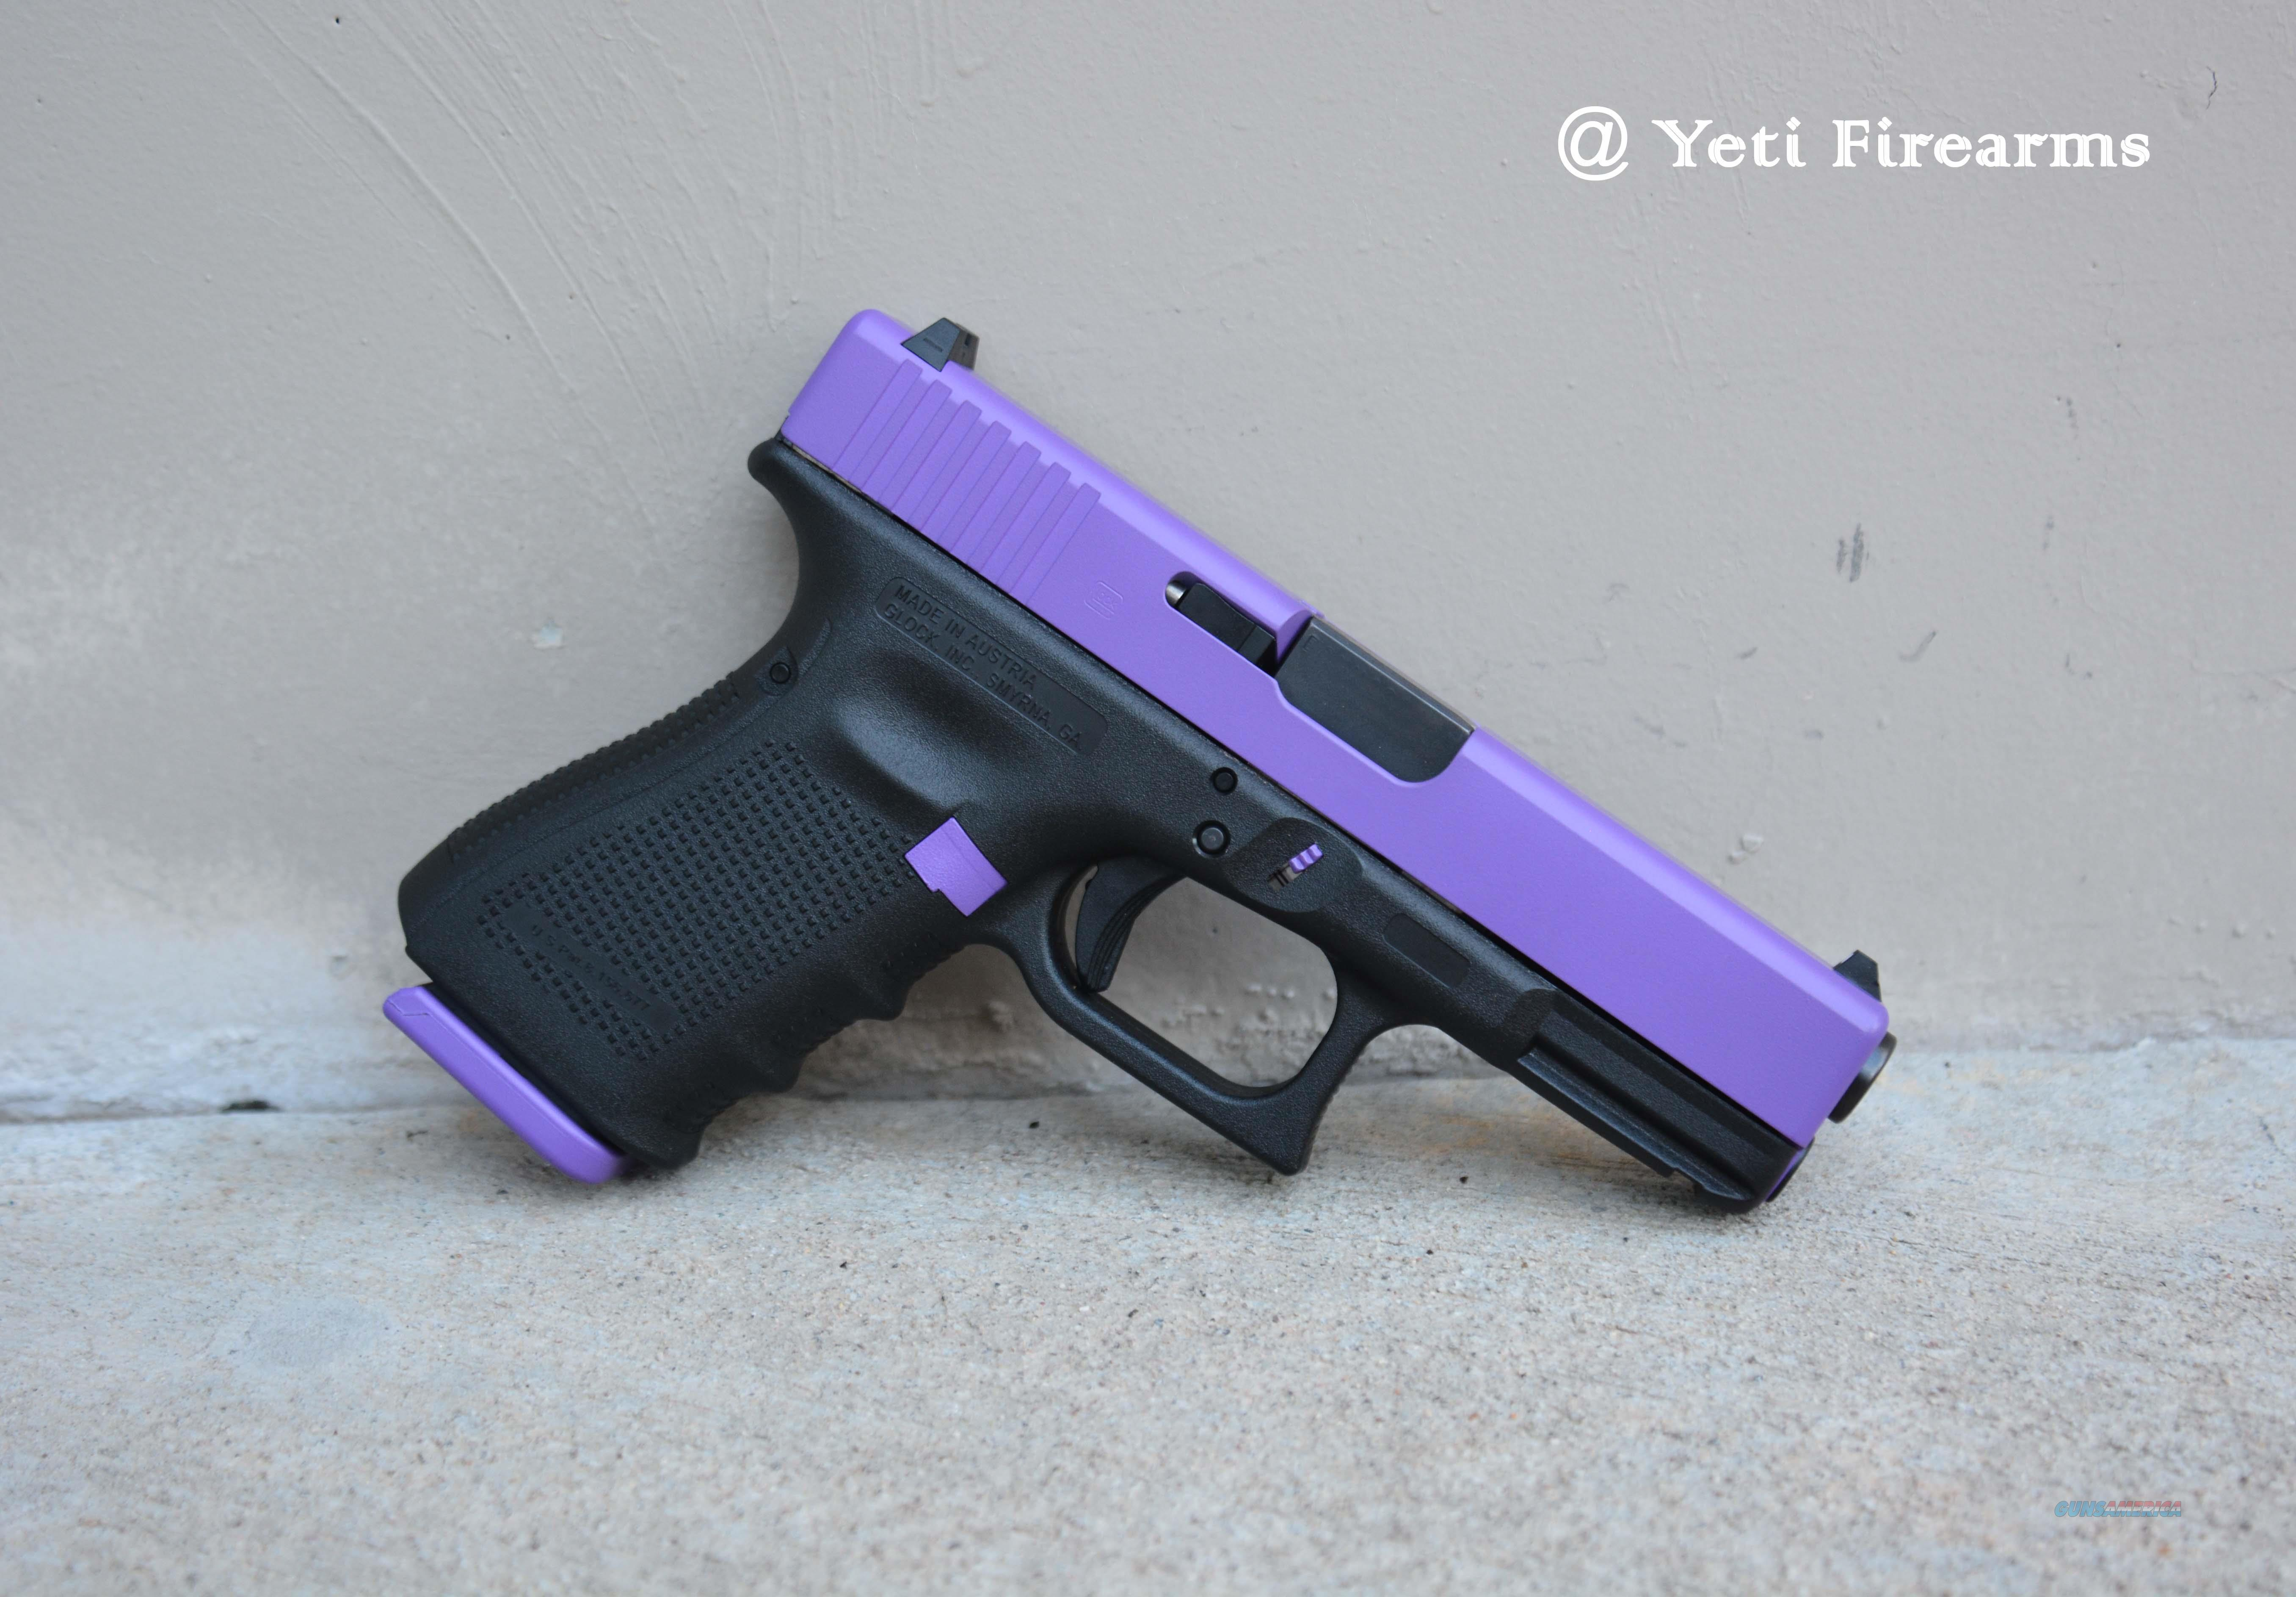 X-Werks Glock 19 Gen 4 9mm Purple Slide + Parts 15  Guns > Pistols > Glock Pistols > 19